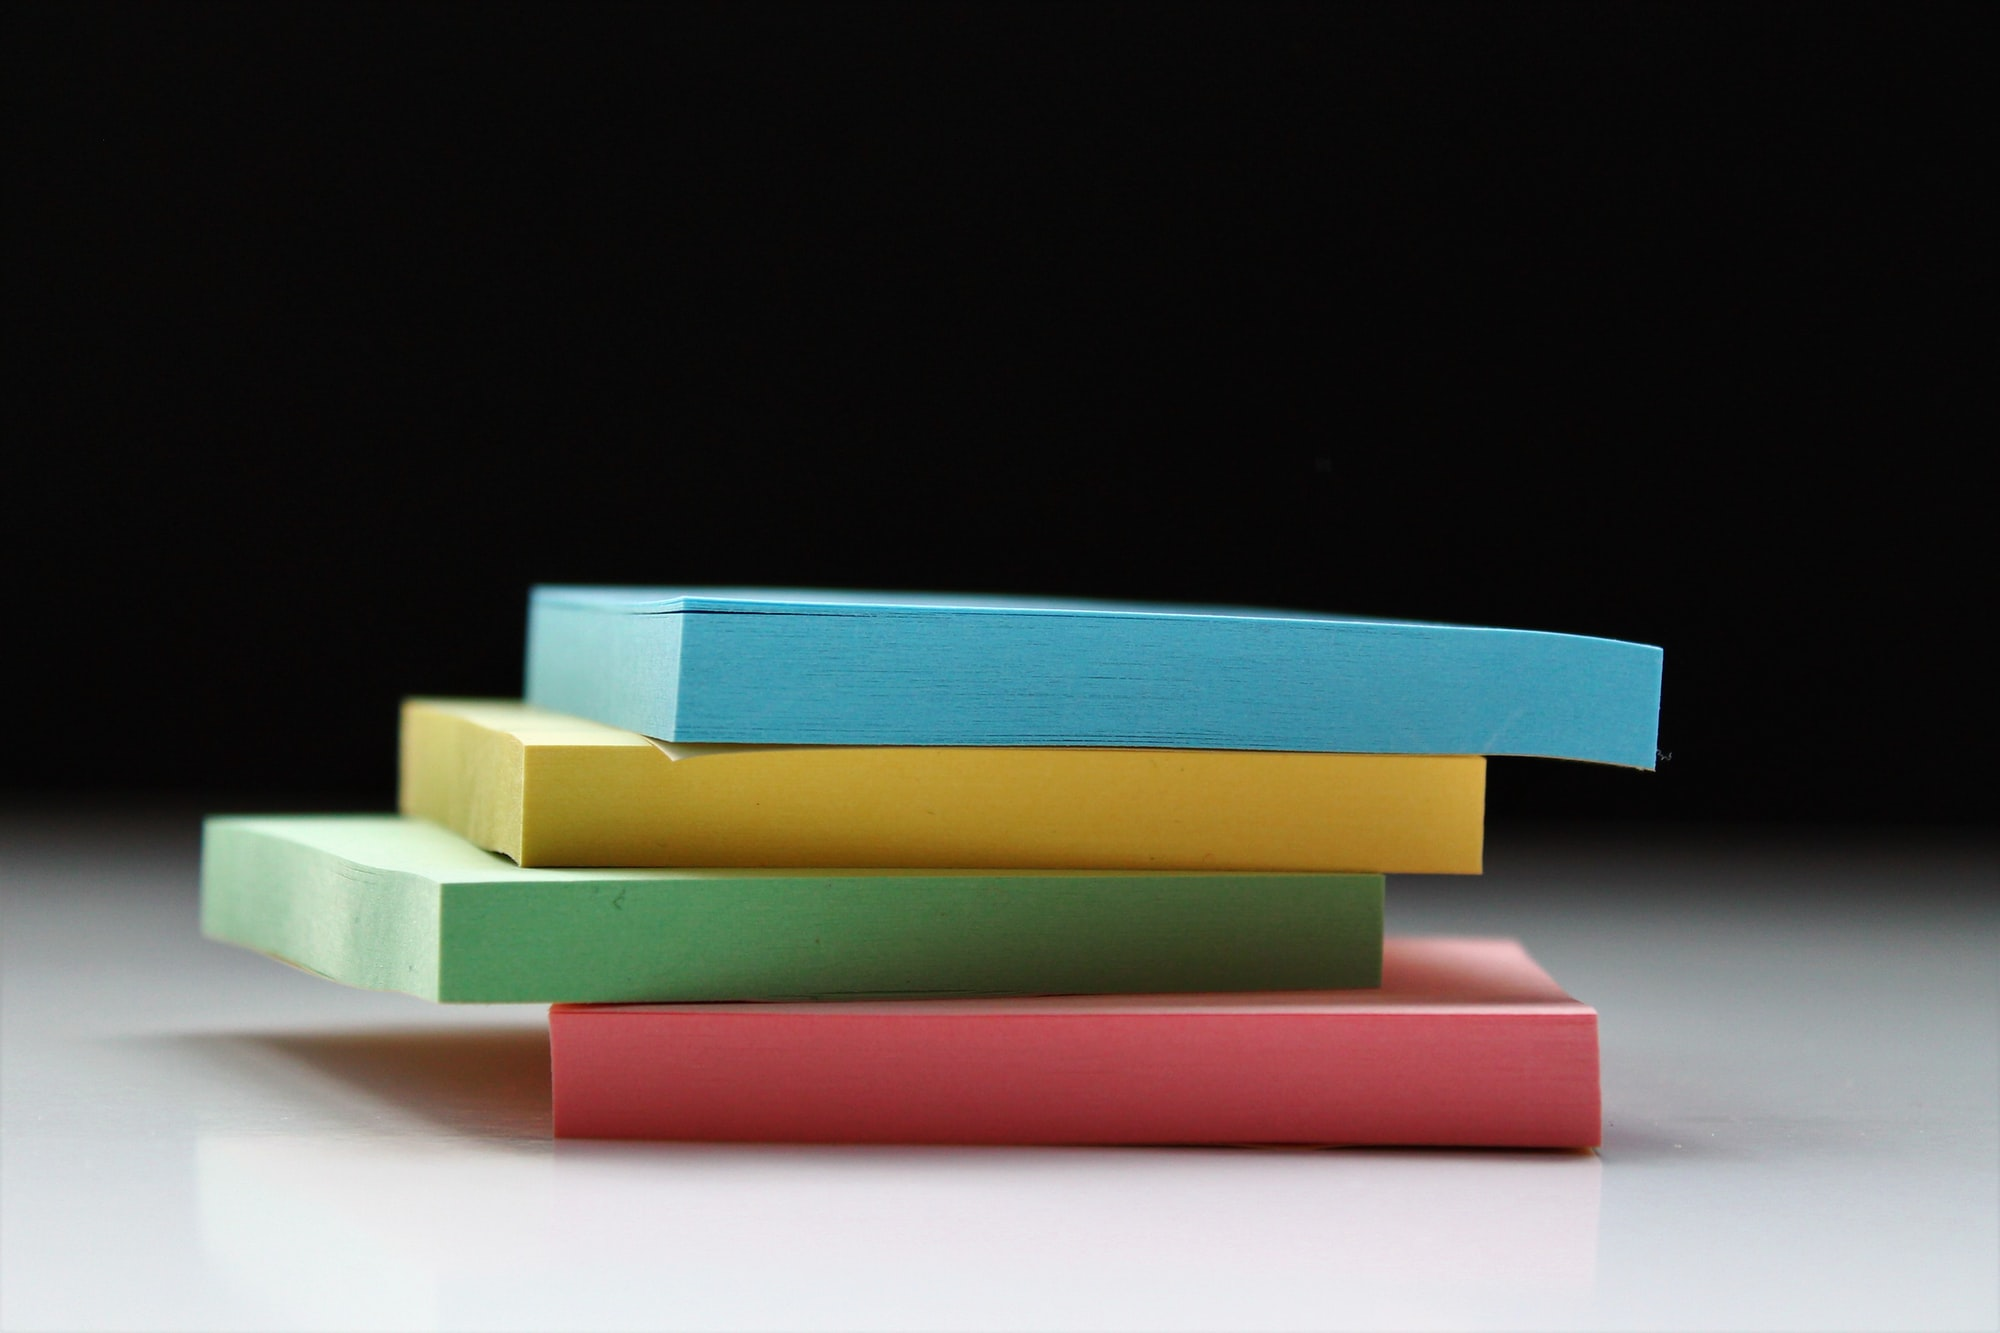 PSA: How to peel a post-it note like a pro